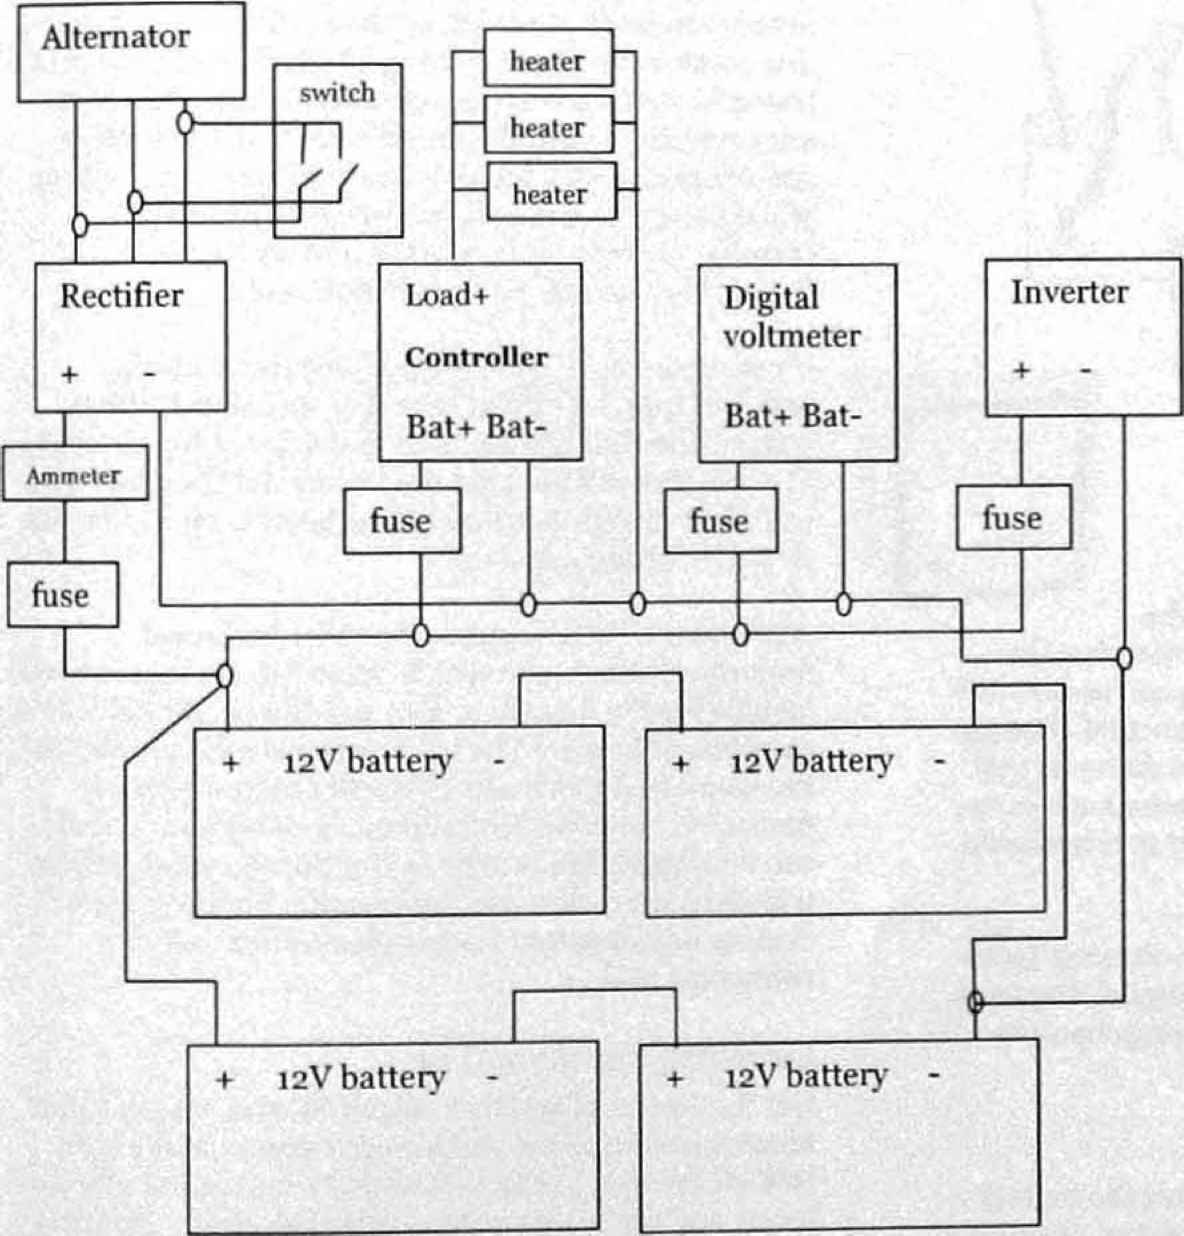 2wire alternator with voltmeter wiring diagram